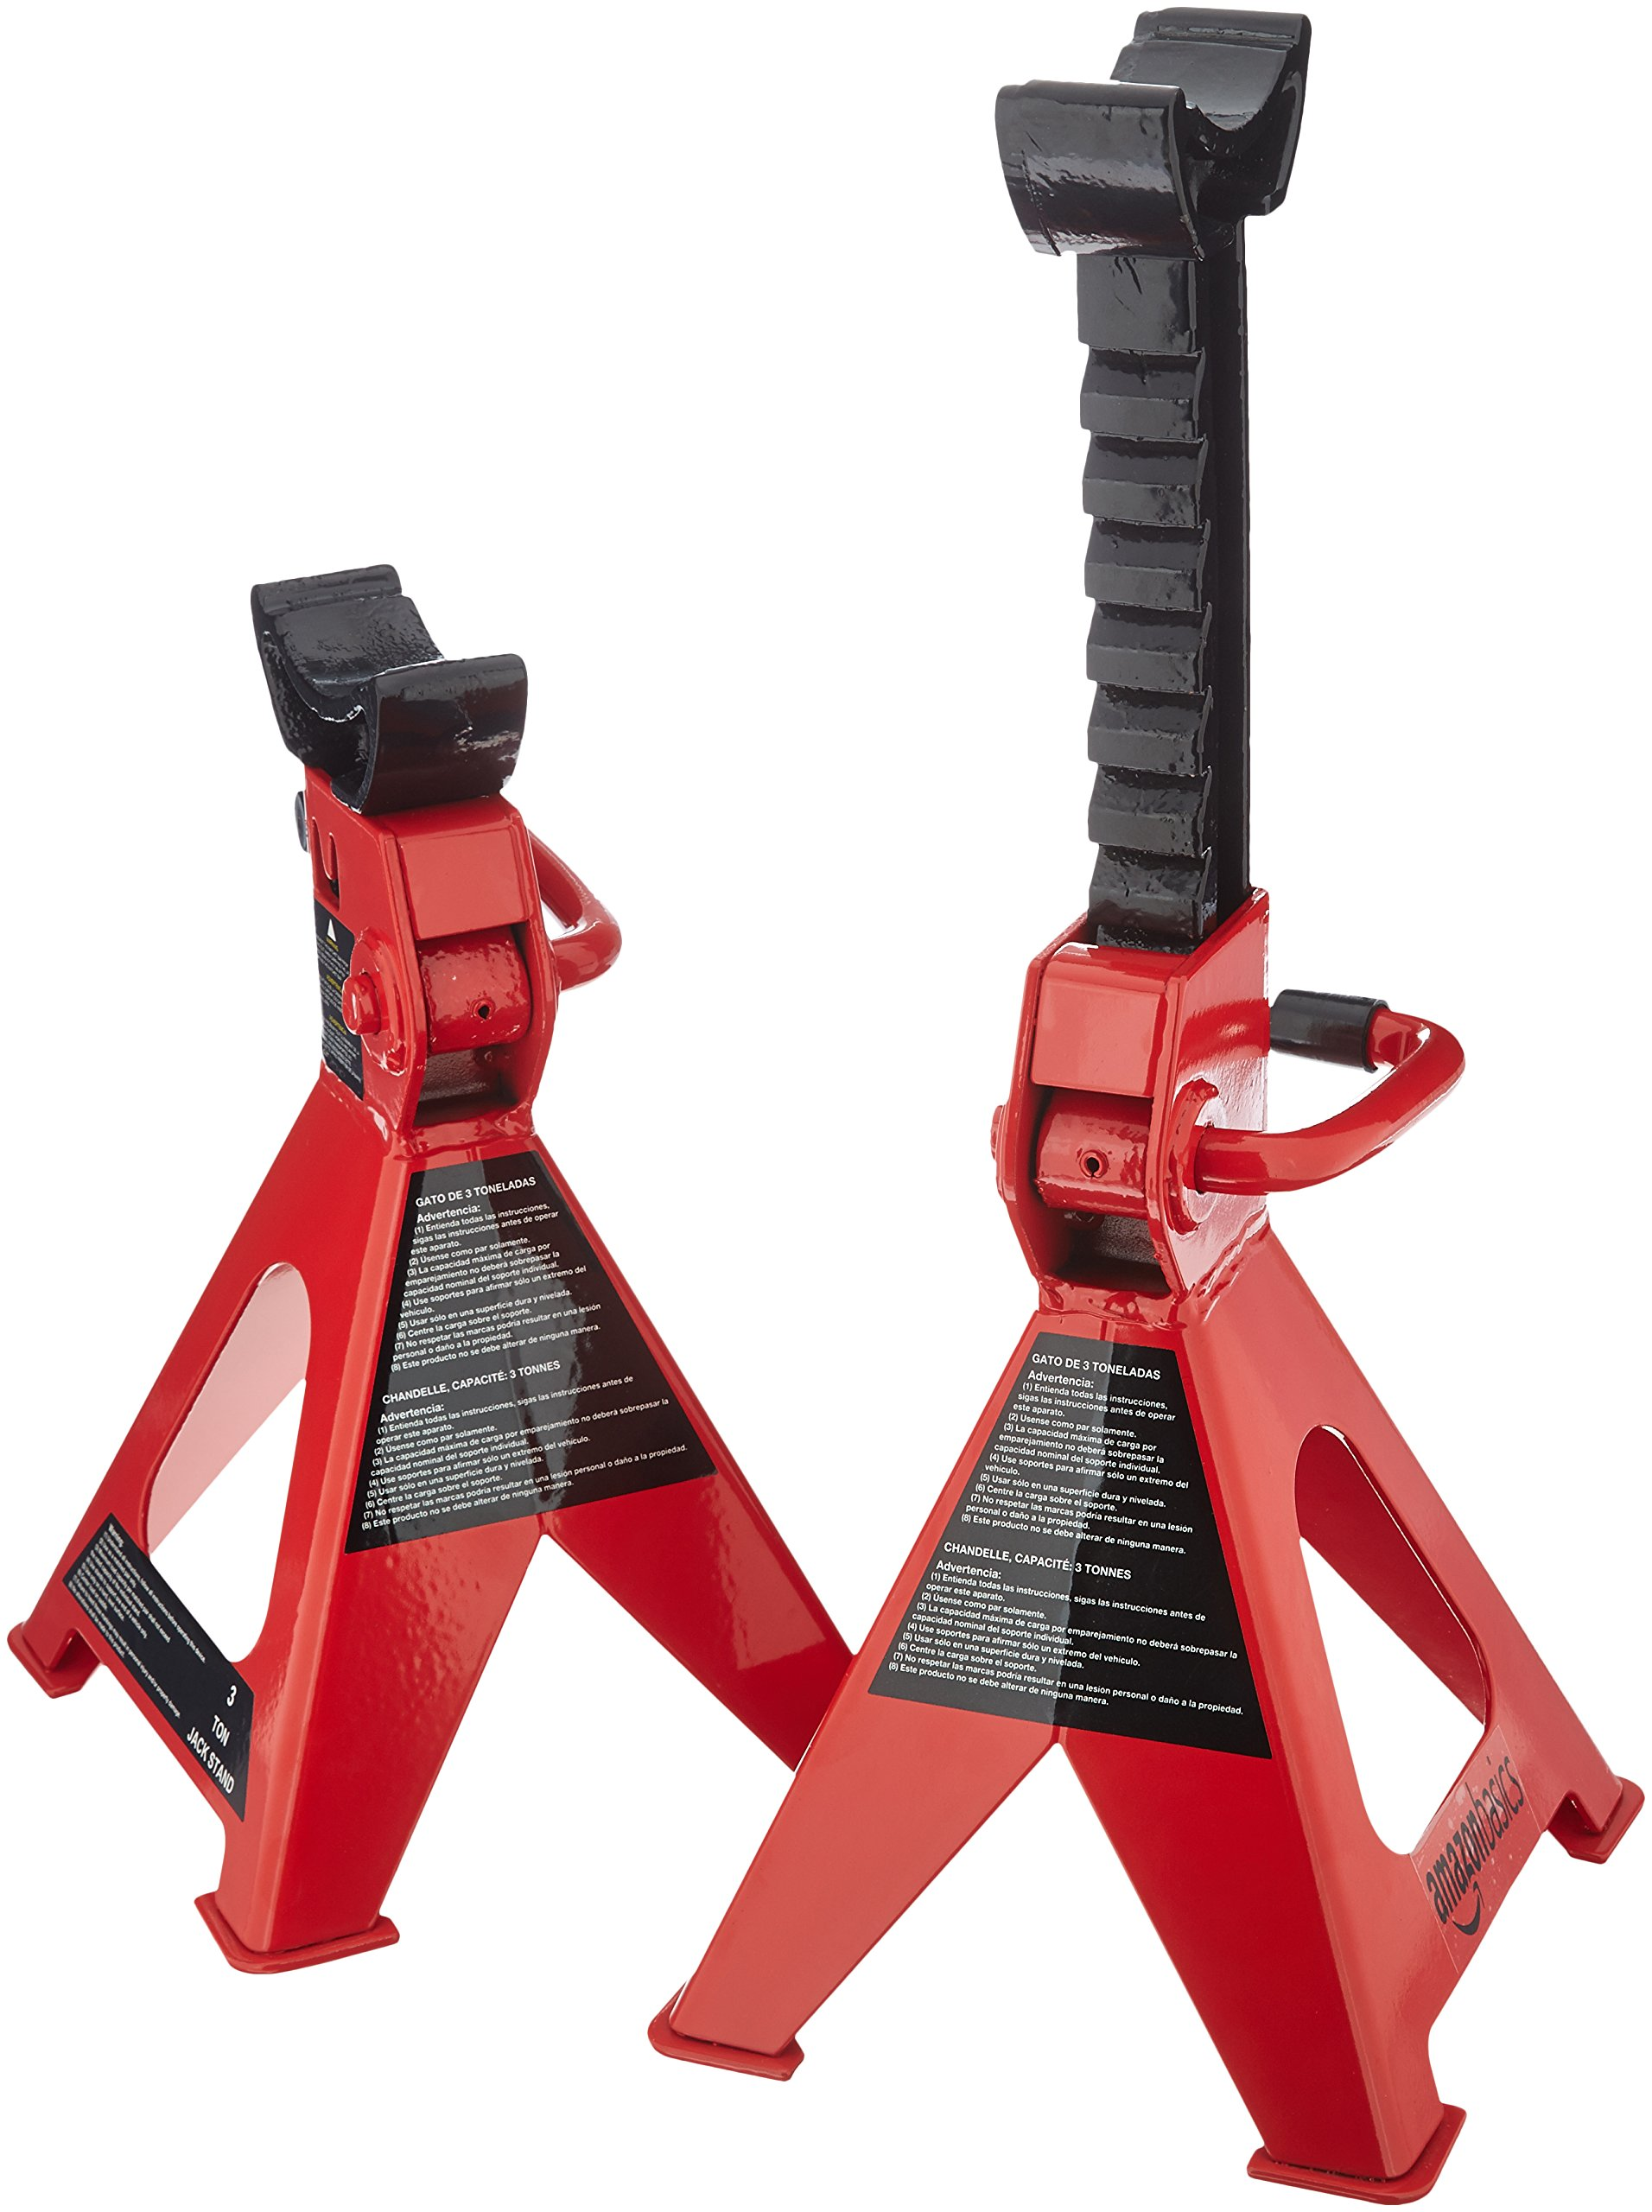 AmazonBasics Steel Jack Stands with 3 Ton Capacity